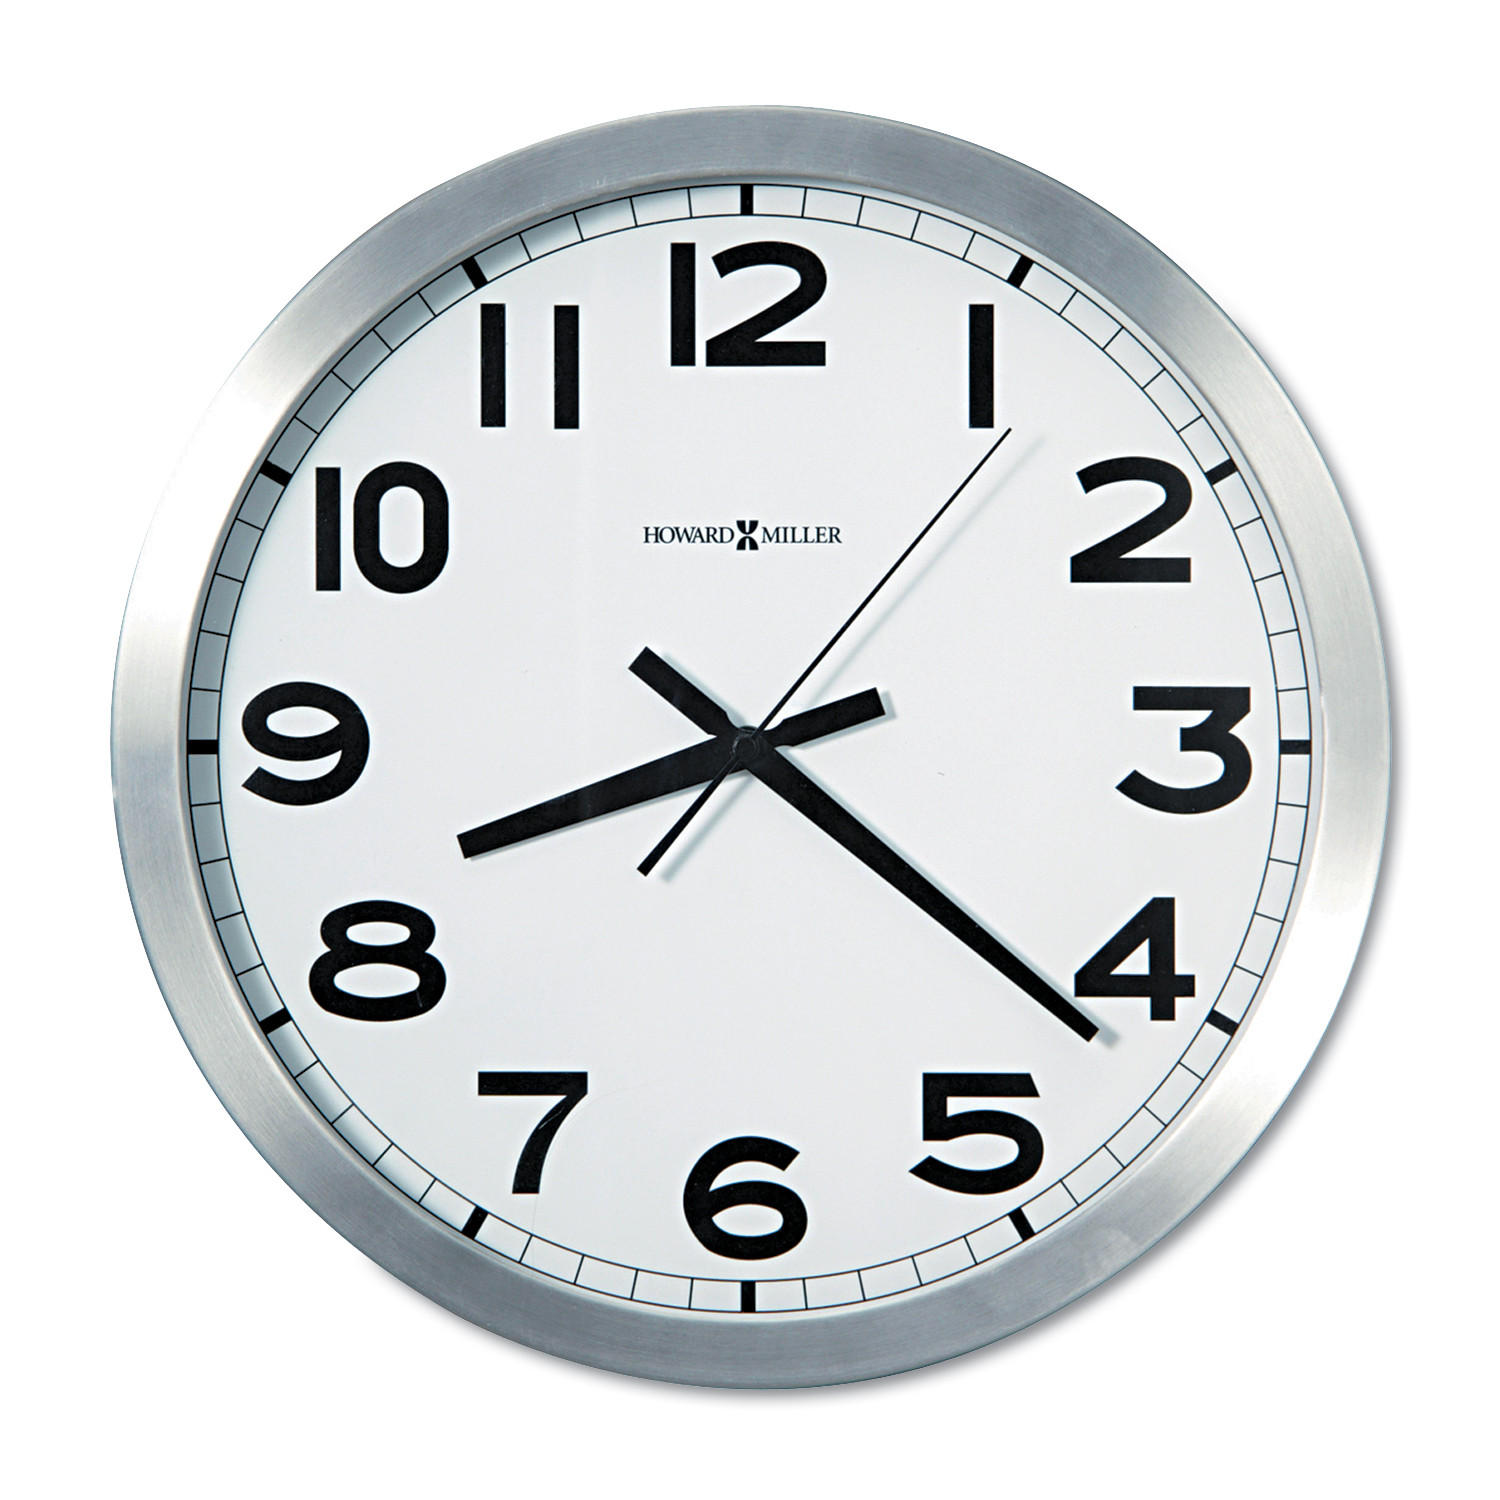 "Howard Miller 15-3 4"" Round Wall Clock by"